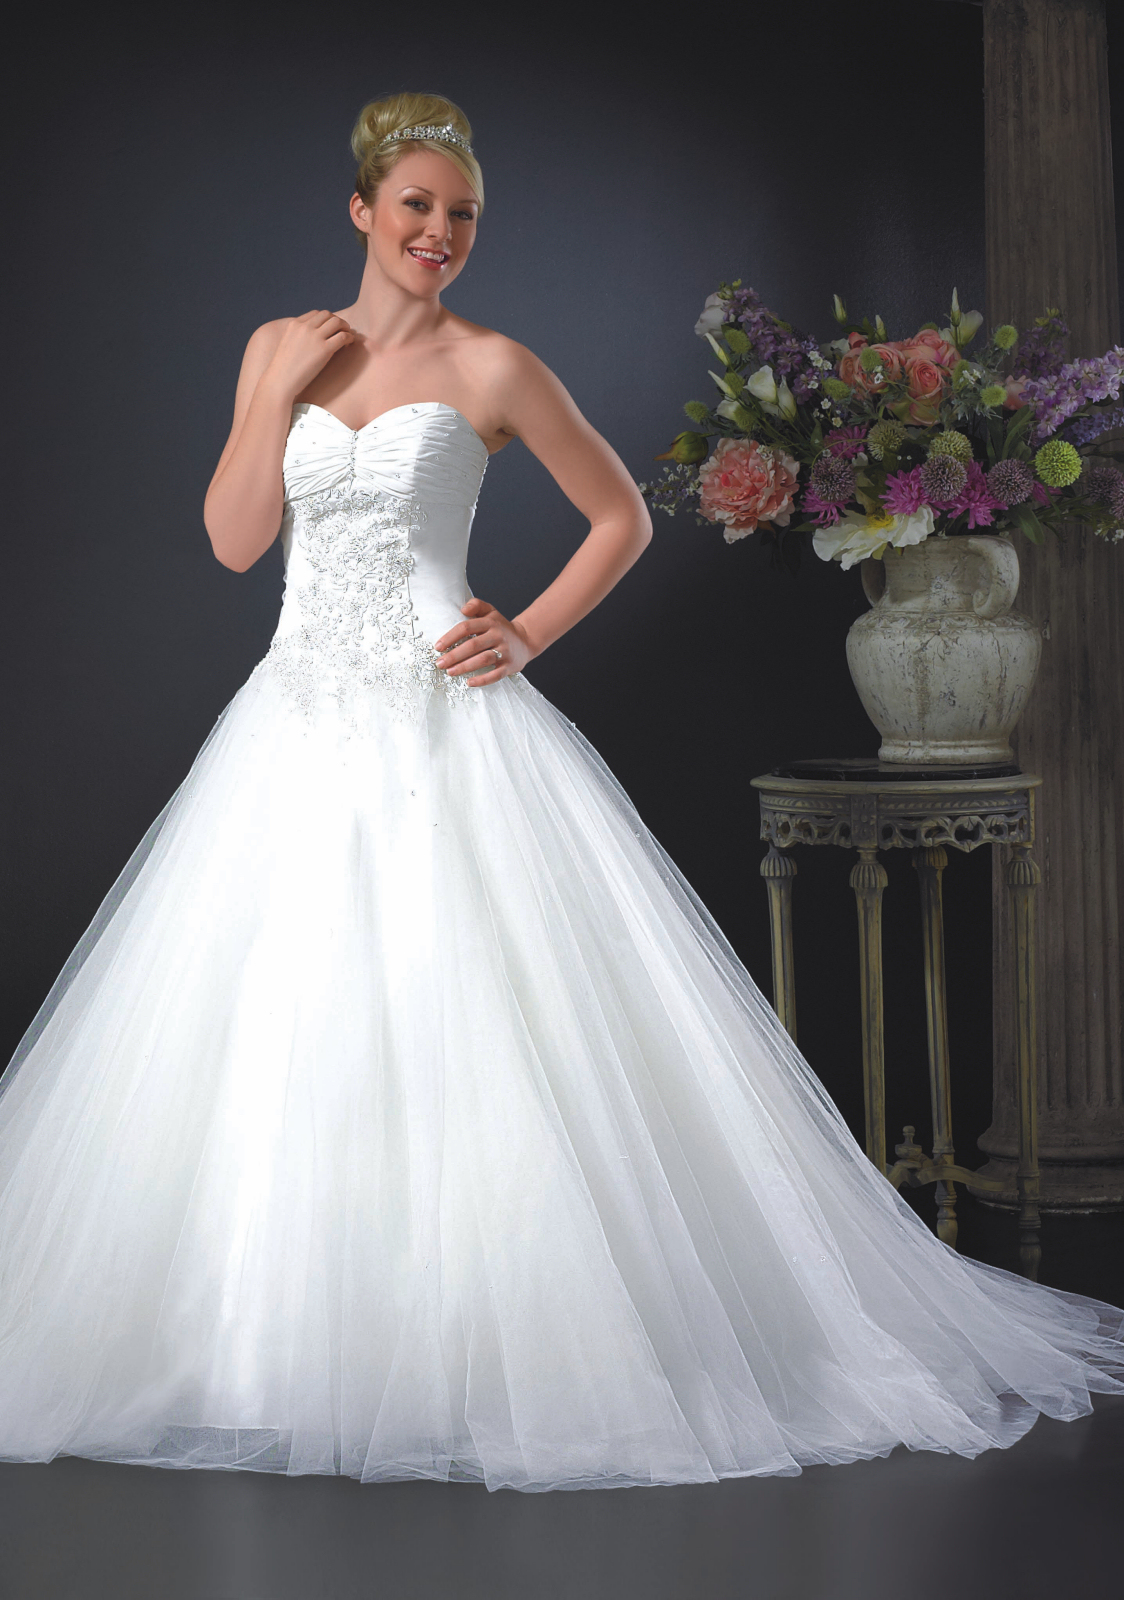 Wedding Dresses For Rent In Phoenix Az Flower Girl Dresses